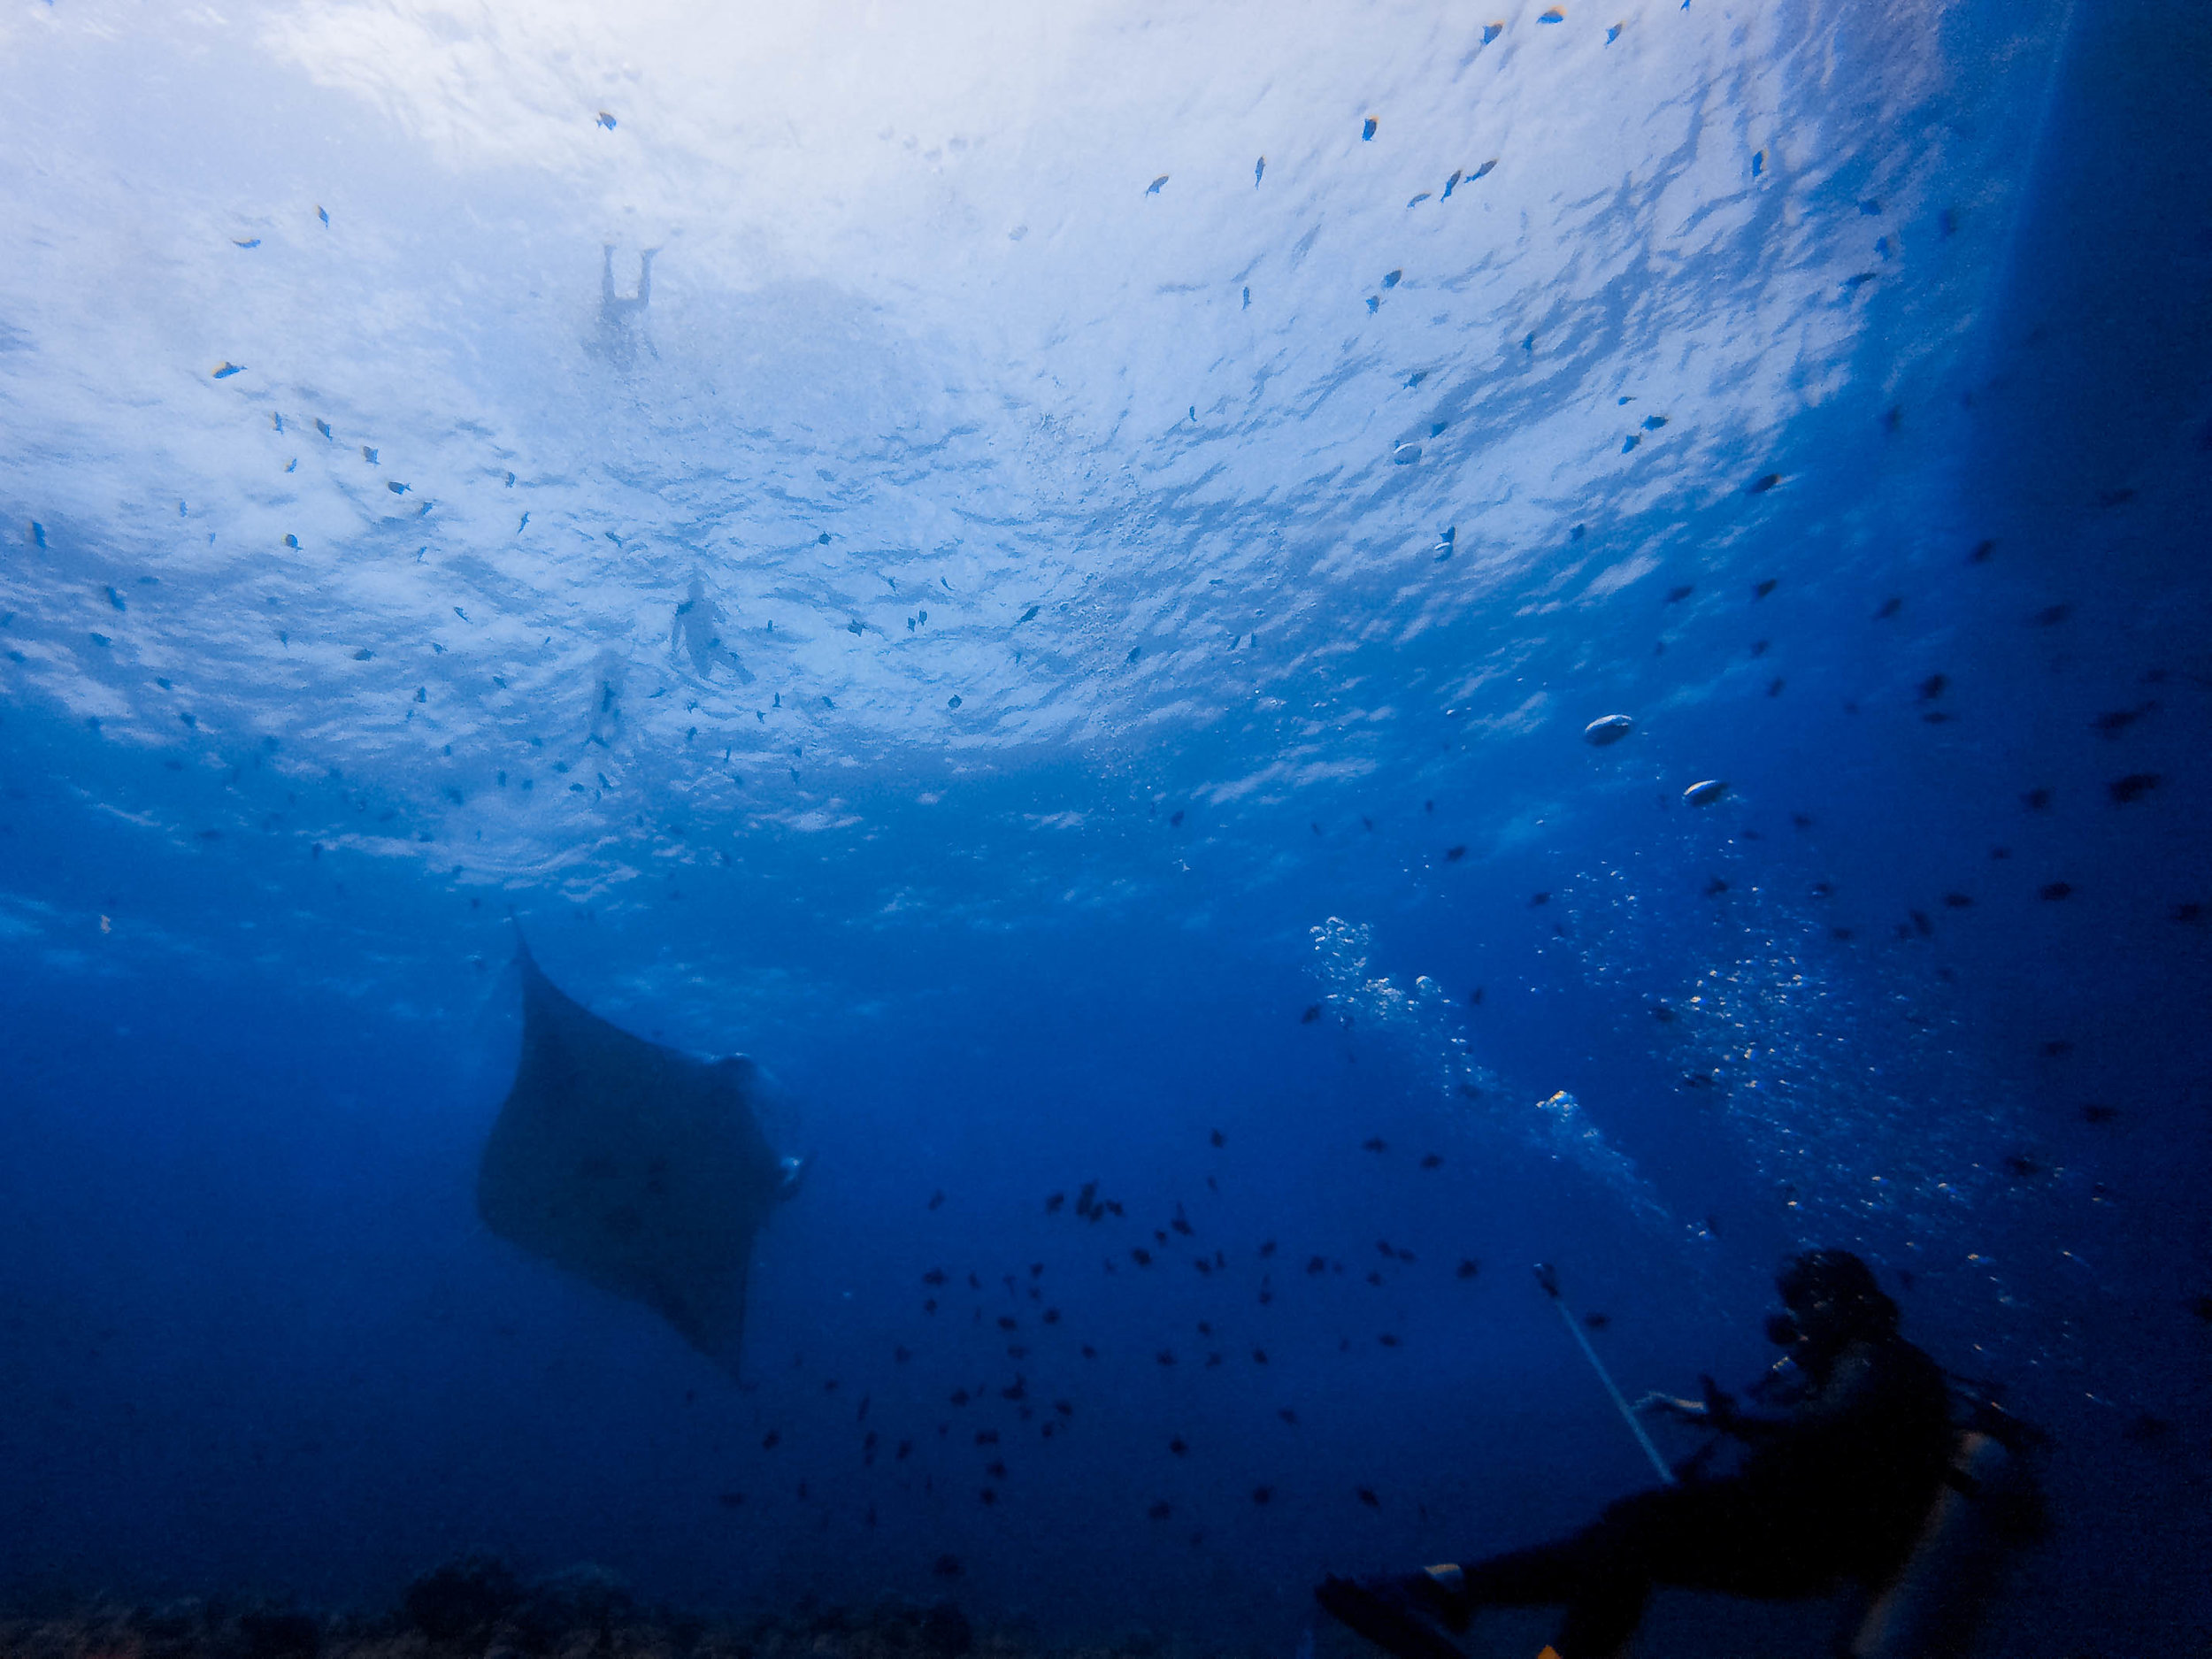 some snorkelers above the manta ray.